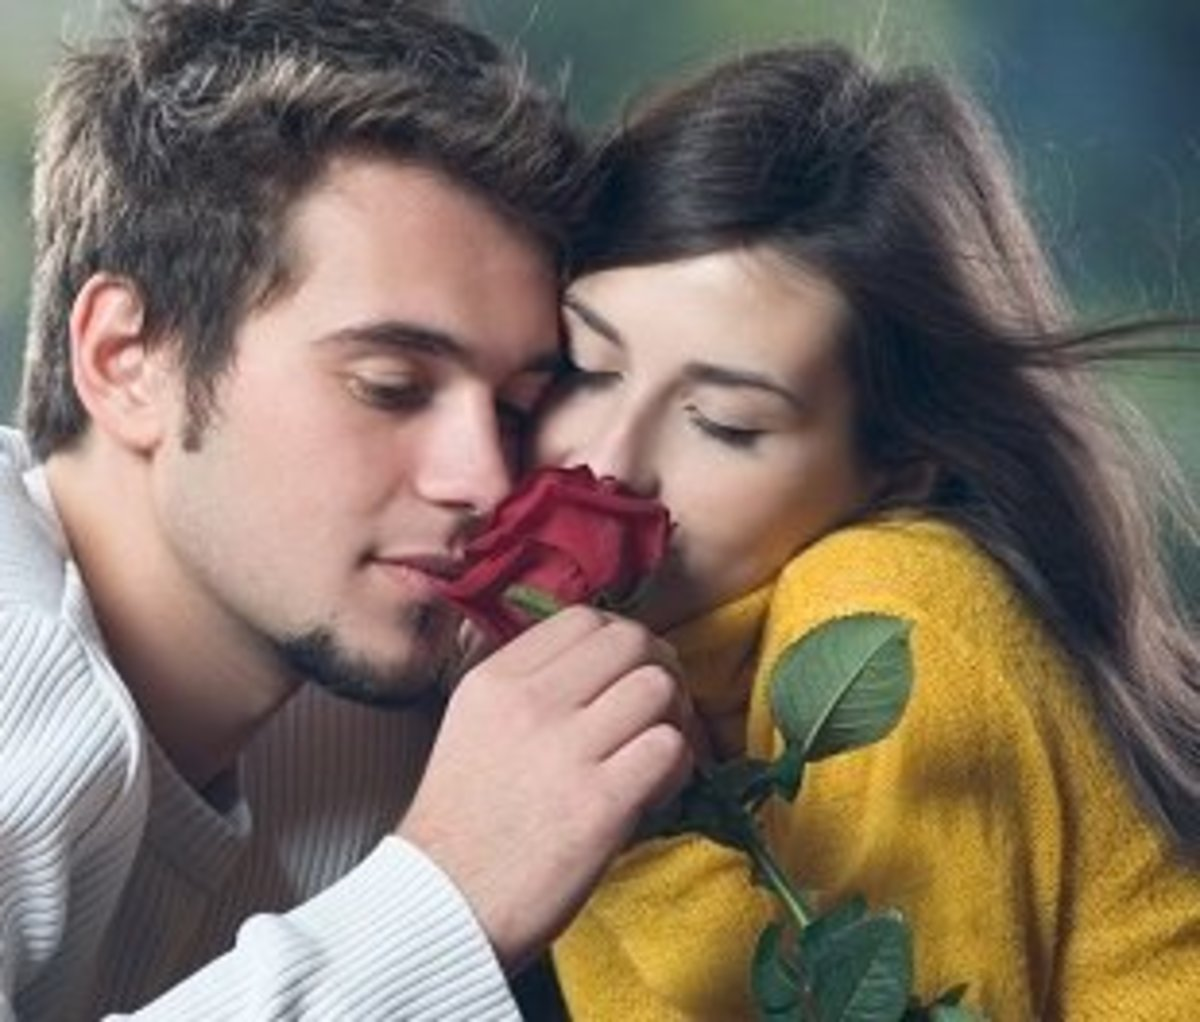 Three Things That Make Women Want to Be With You